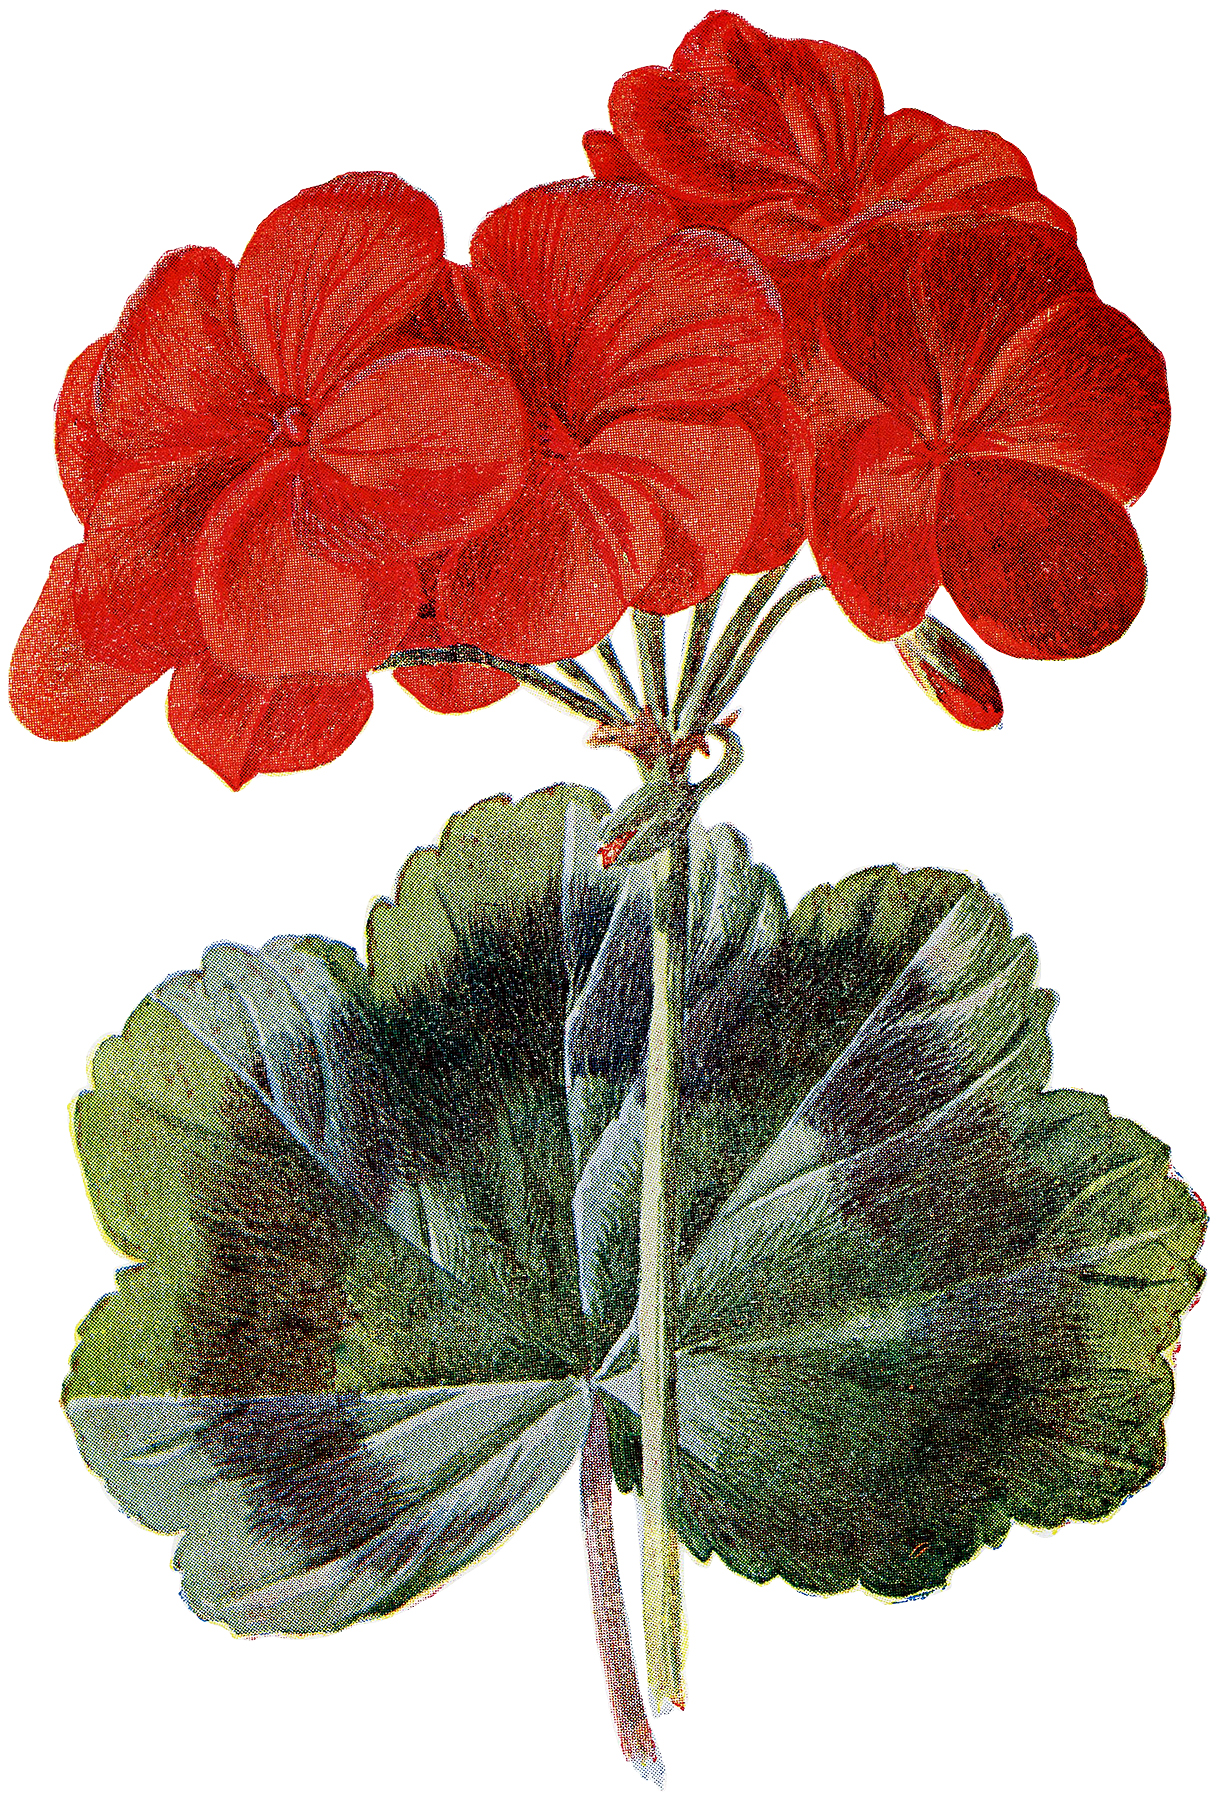 Spectacular Red Geranium Botanical Image! - The Graphics Fairy